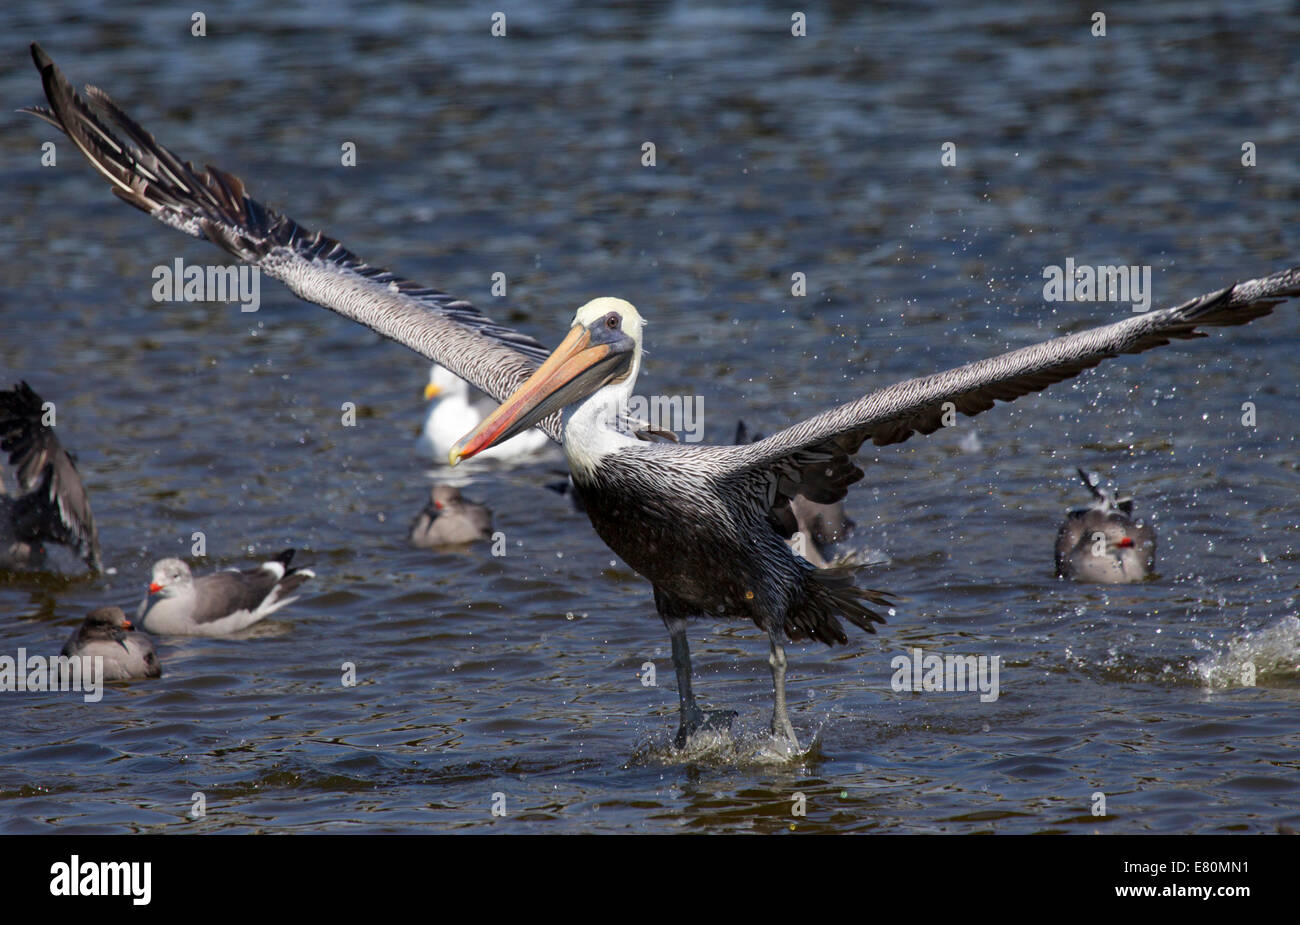 Brown Pelican Takeoff - Stock Image